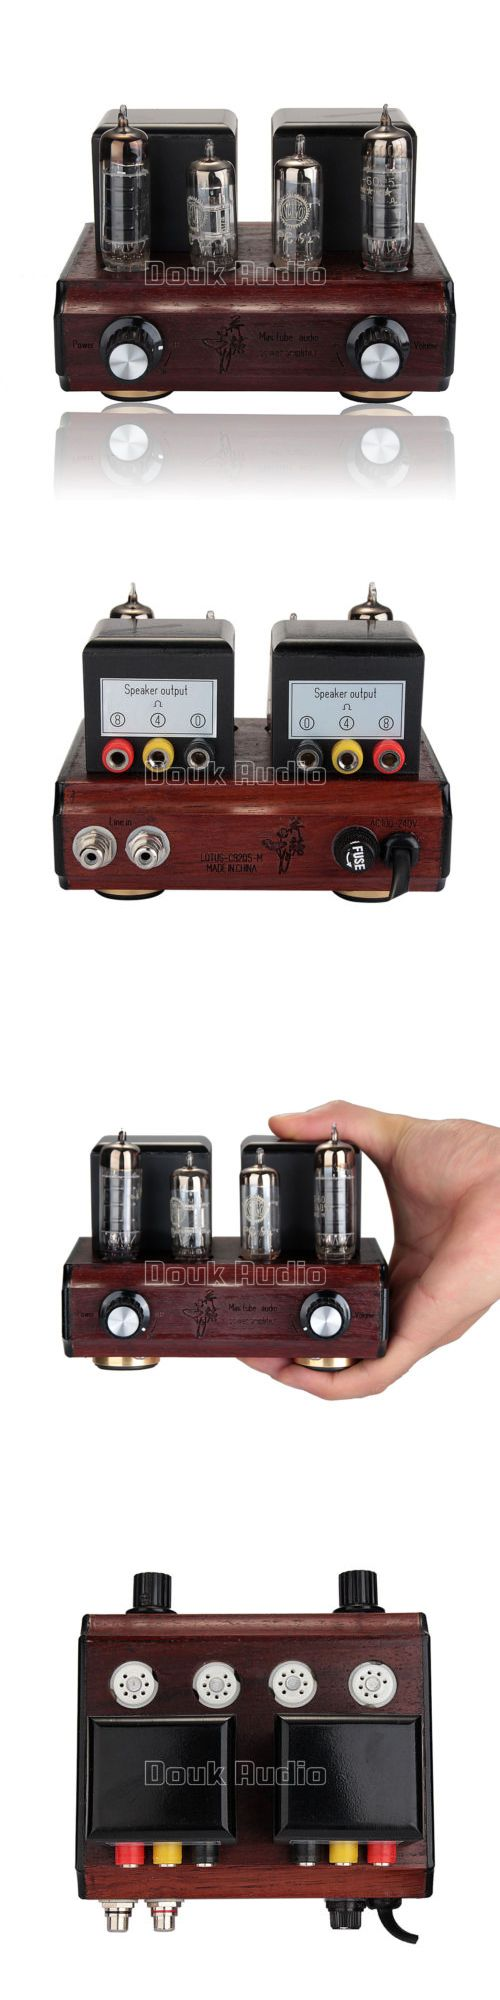 Vintage Amplifiers and Tube Amps: Douk Audio Pc92+6Aq5 Vacuum Tube Integrated Amplifier Mini Stereo Desktop Amp -> BUY IT NOW ONLY: $149.99 on eBay!